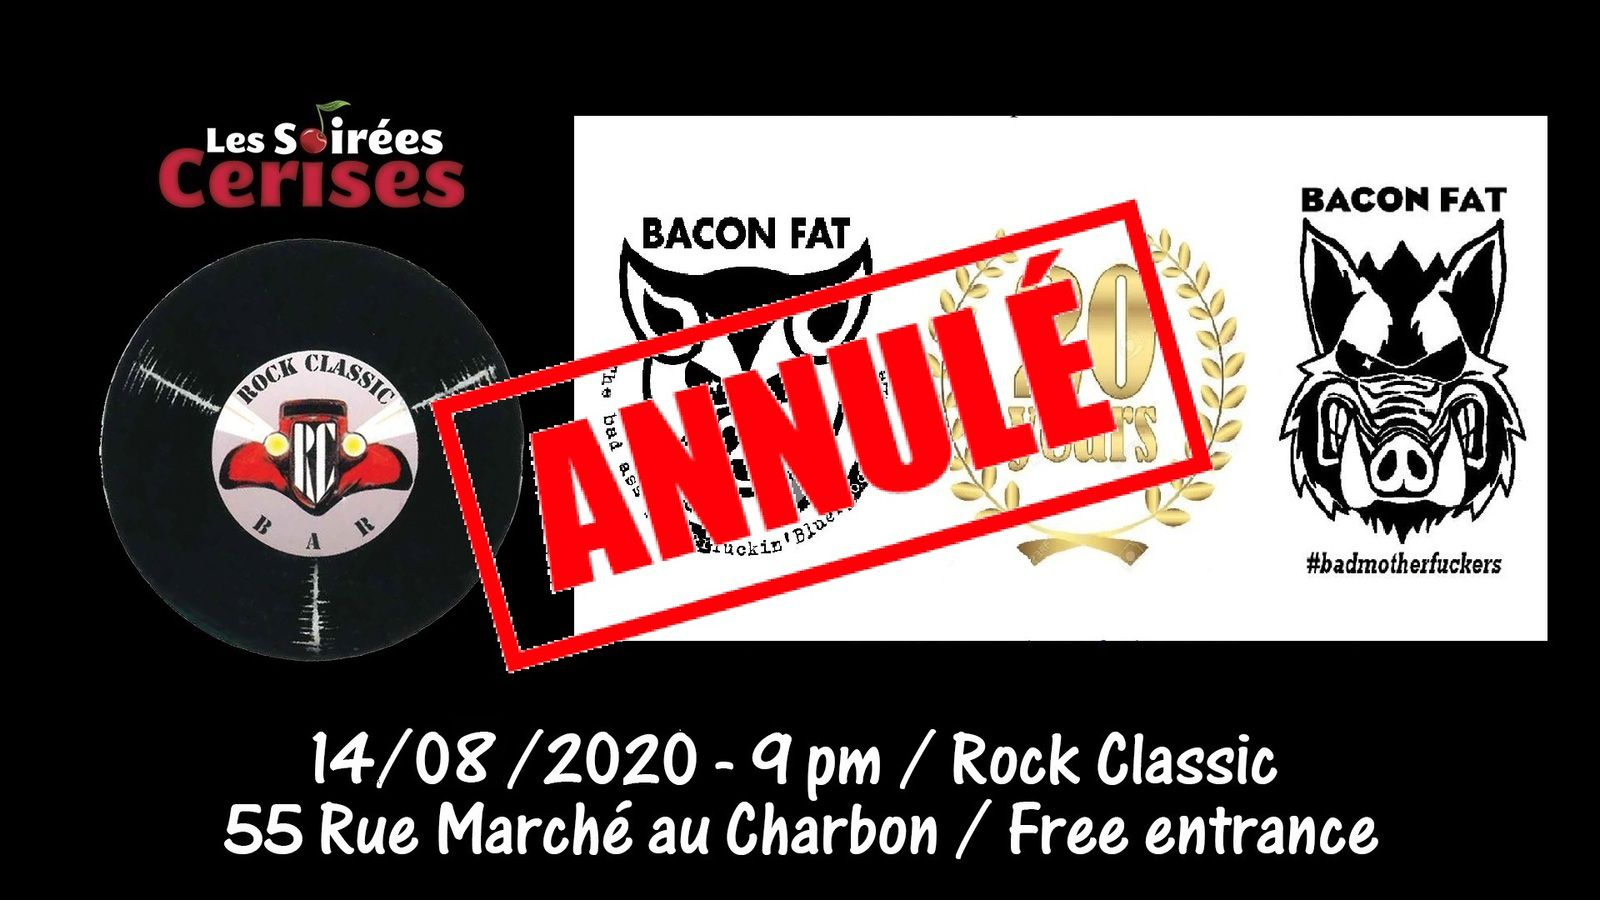 ▶ Bacon Fat @ Rock Classic - 14/08/2020 - annulé !